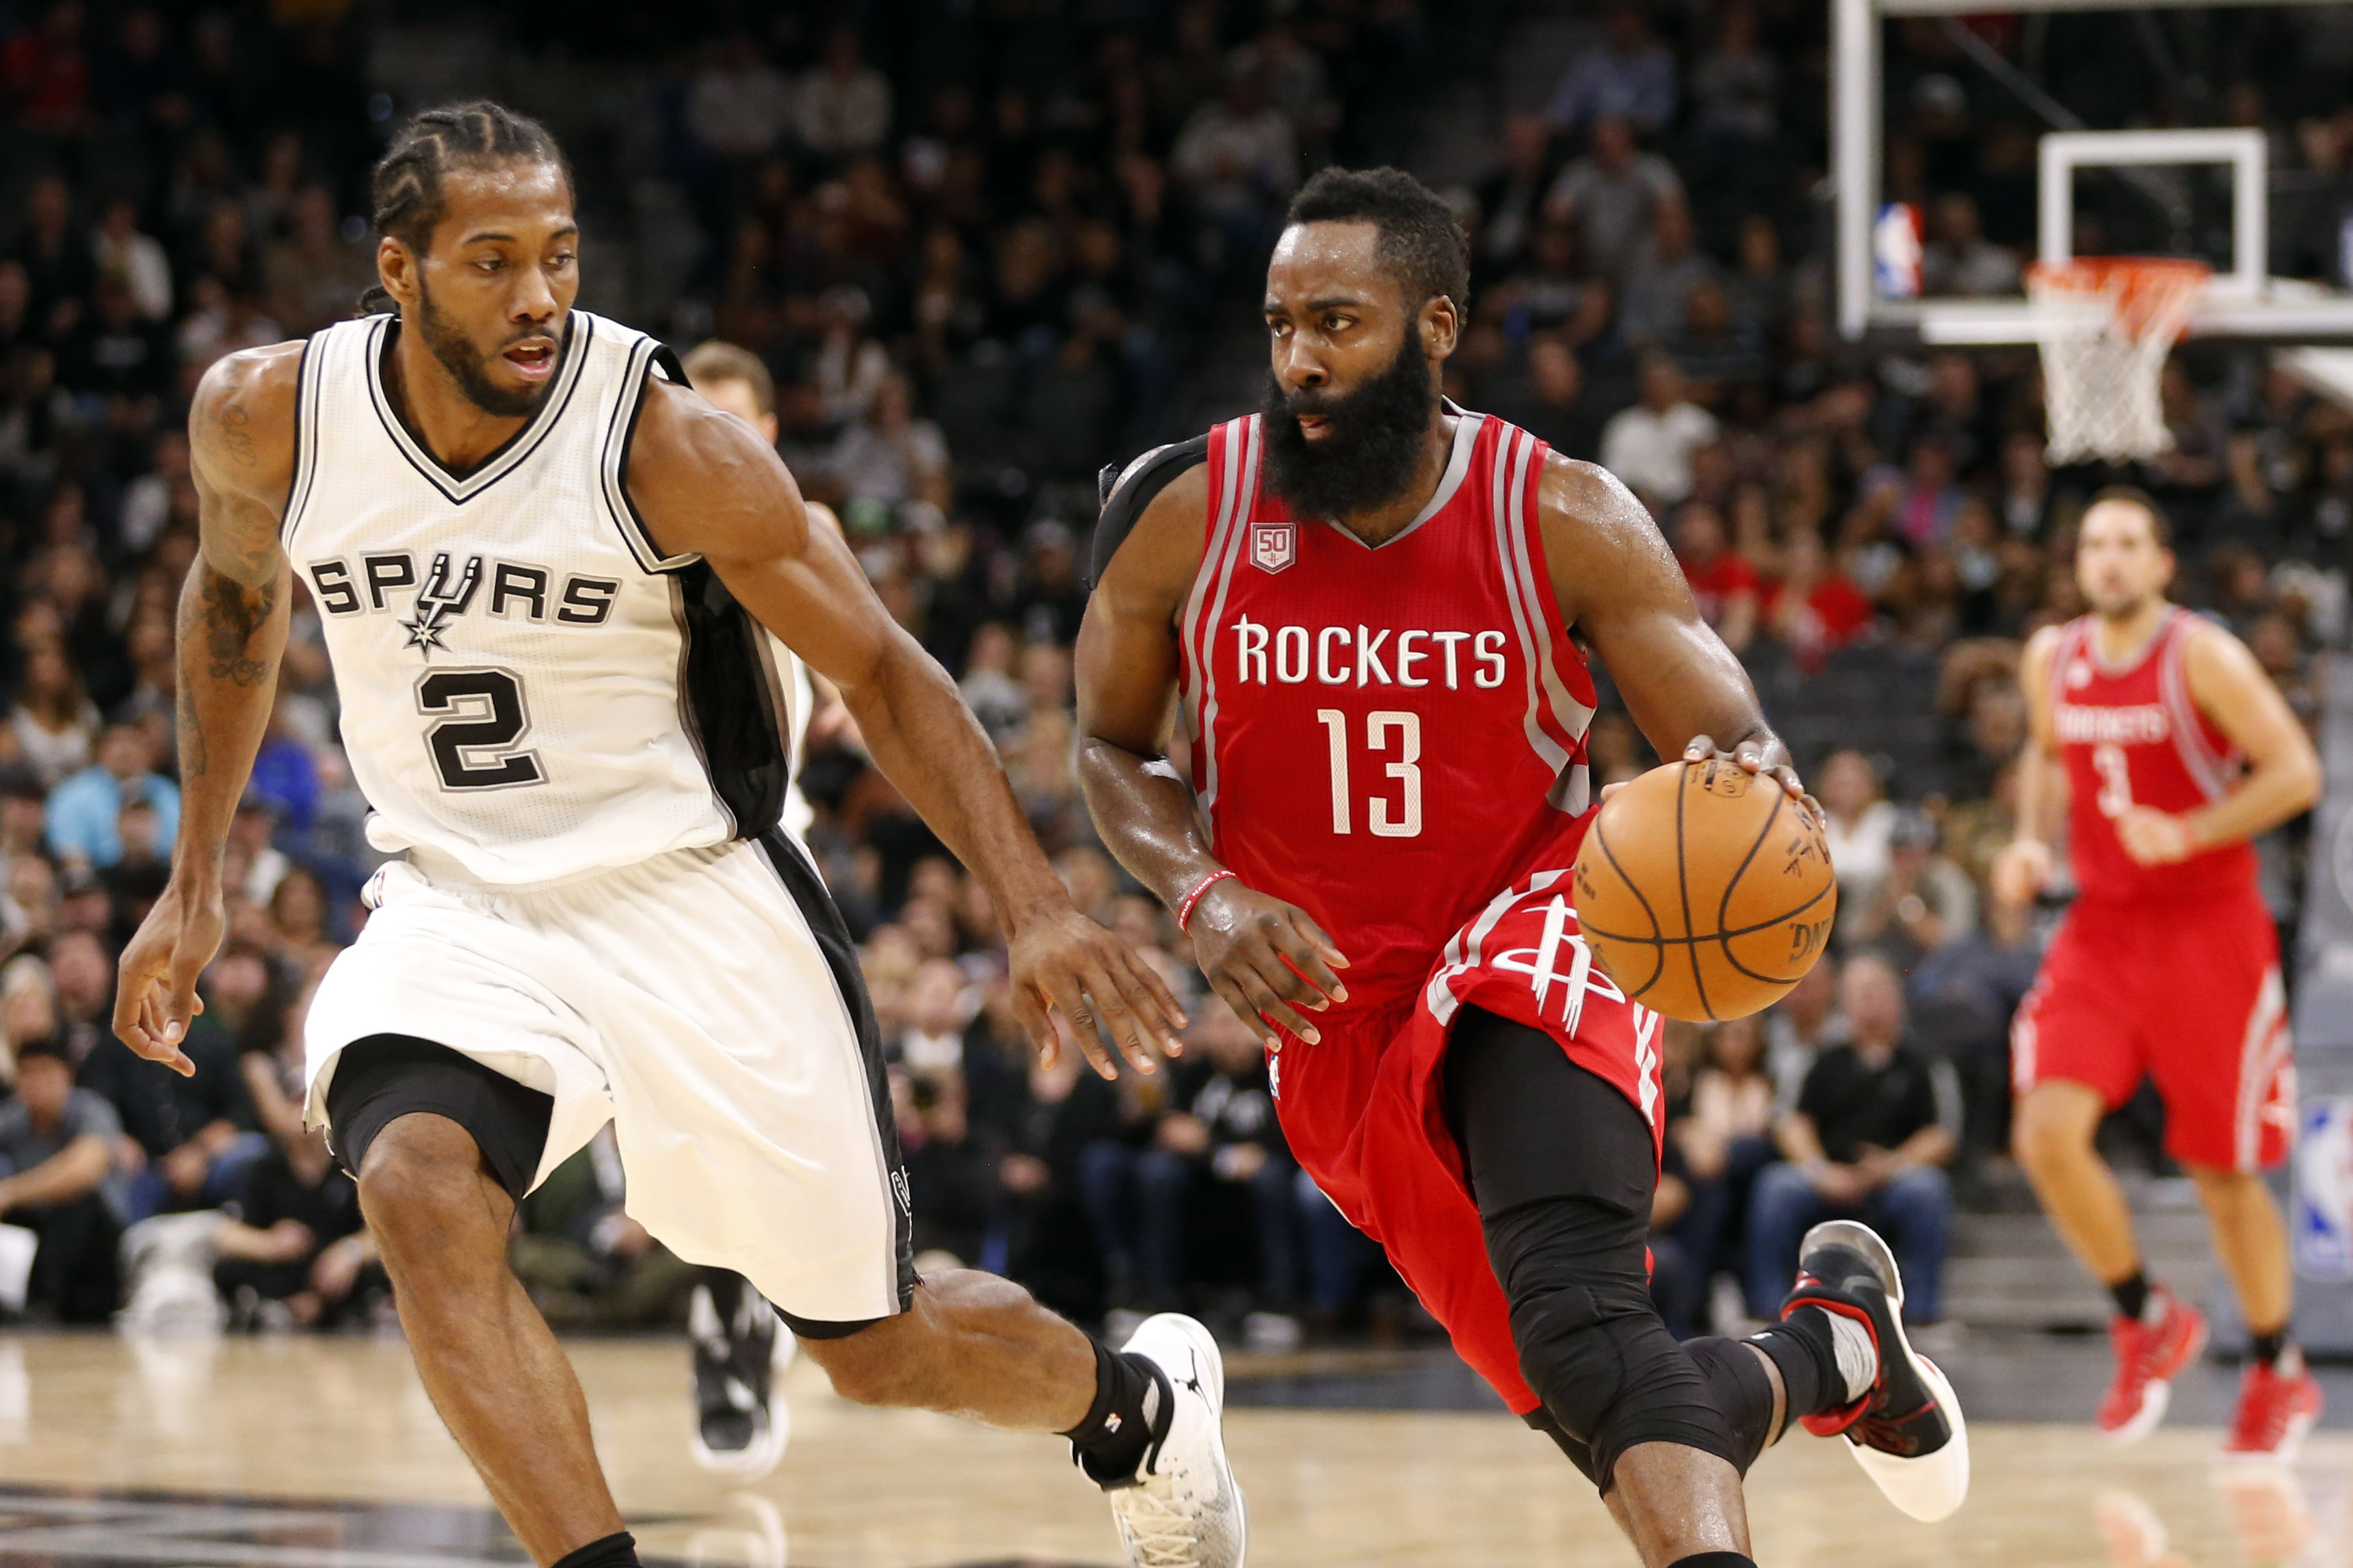 [Preview] 2ª Rodada – Cavs x Raptors e Spurs x Rockets